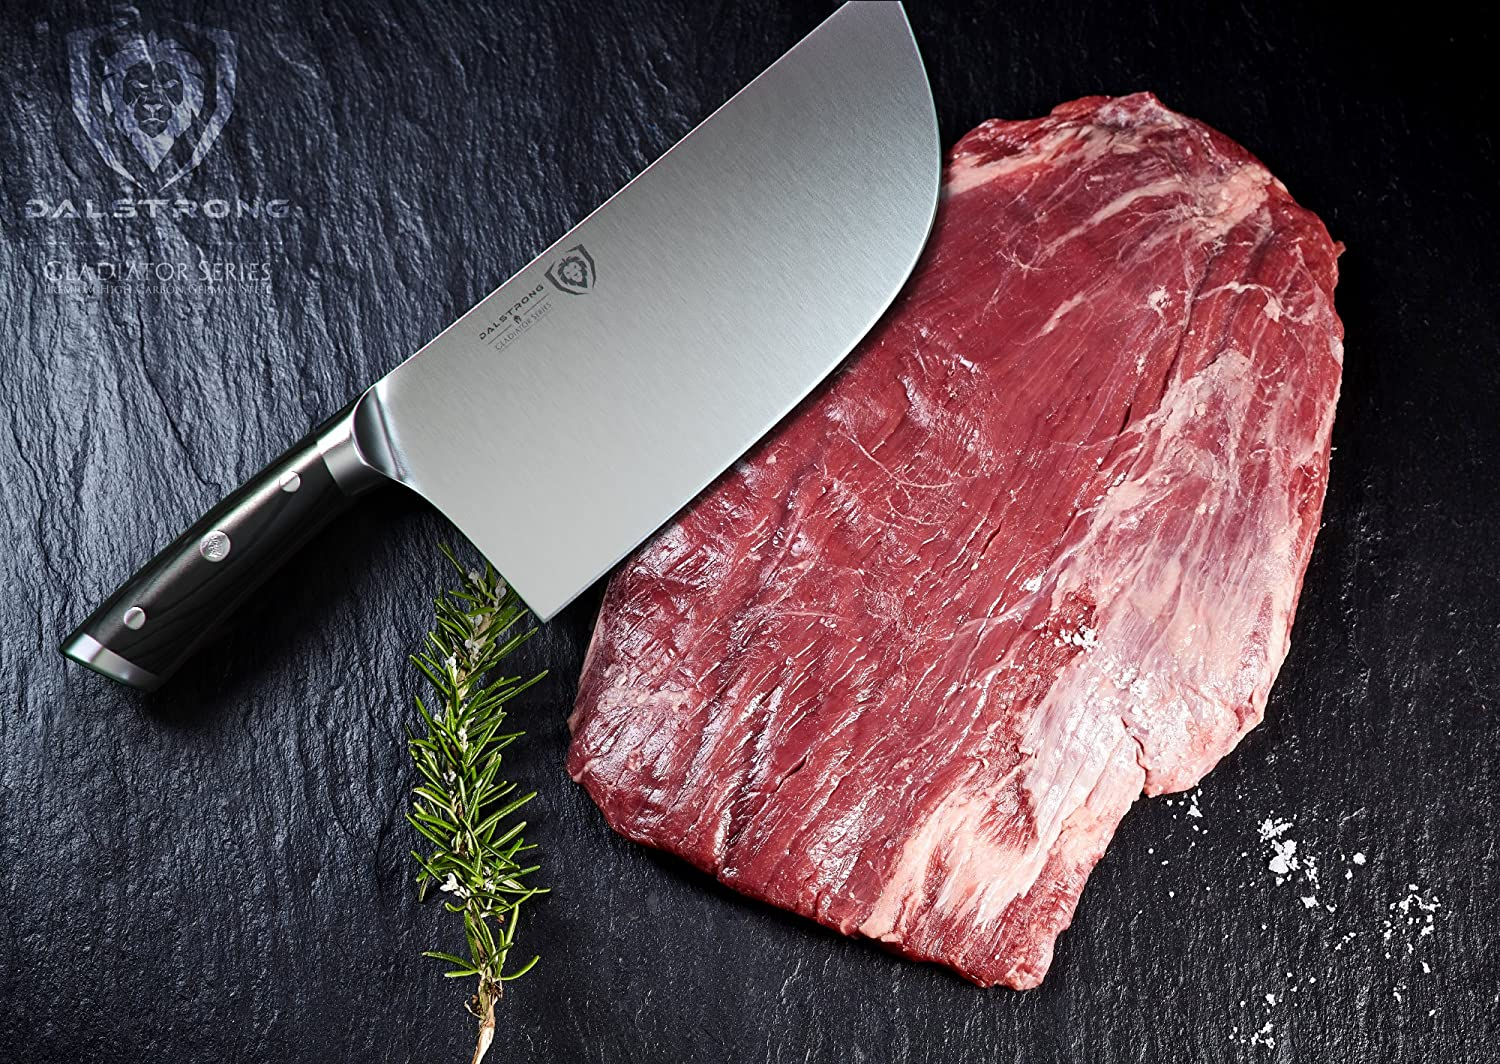 Dalstrong ravager 9-inch cleaver